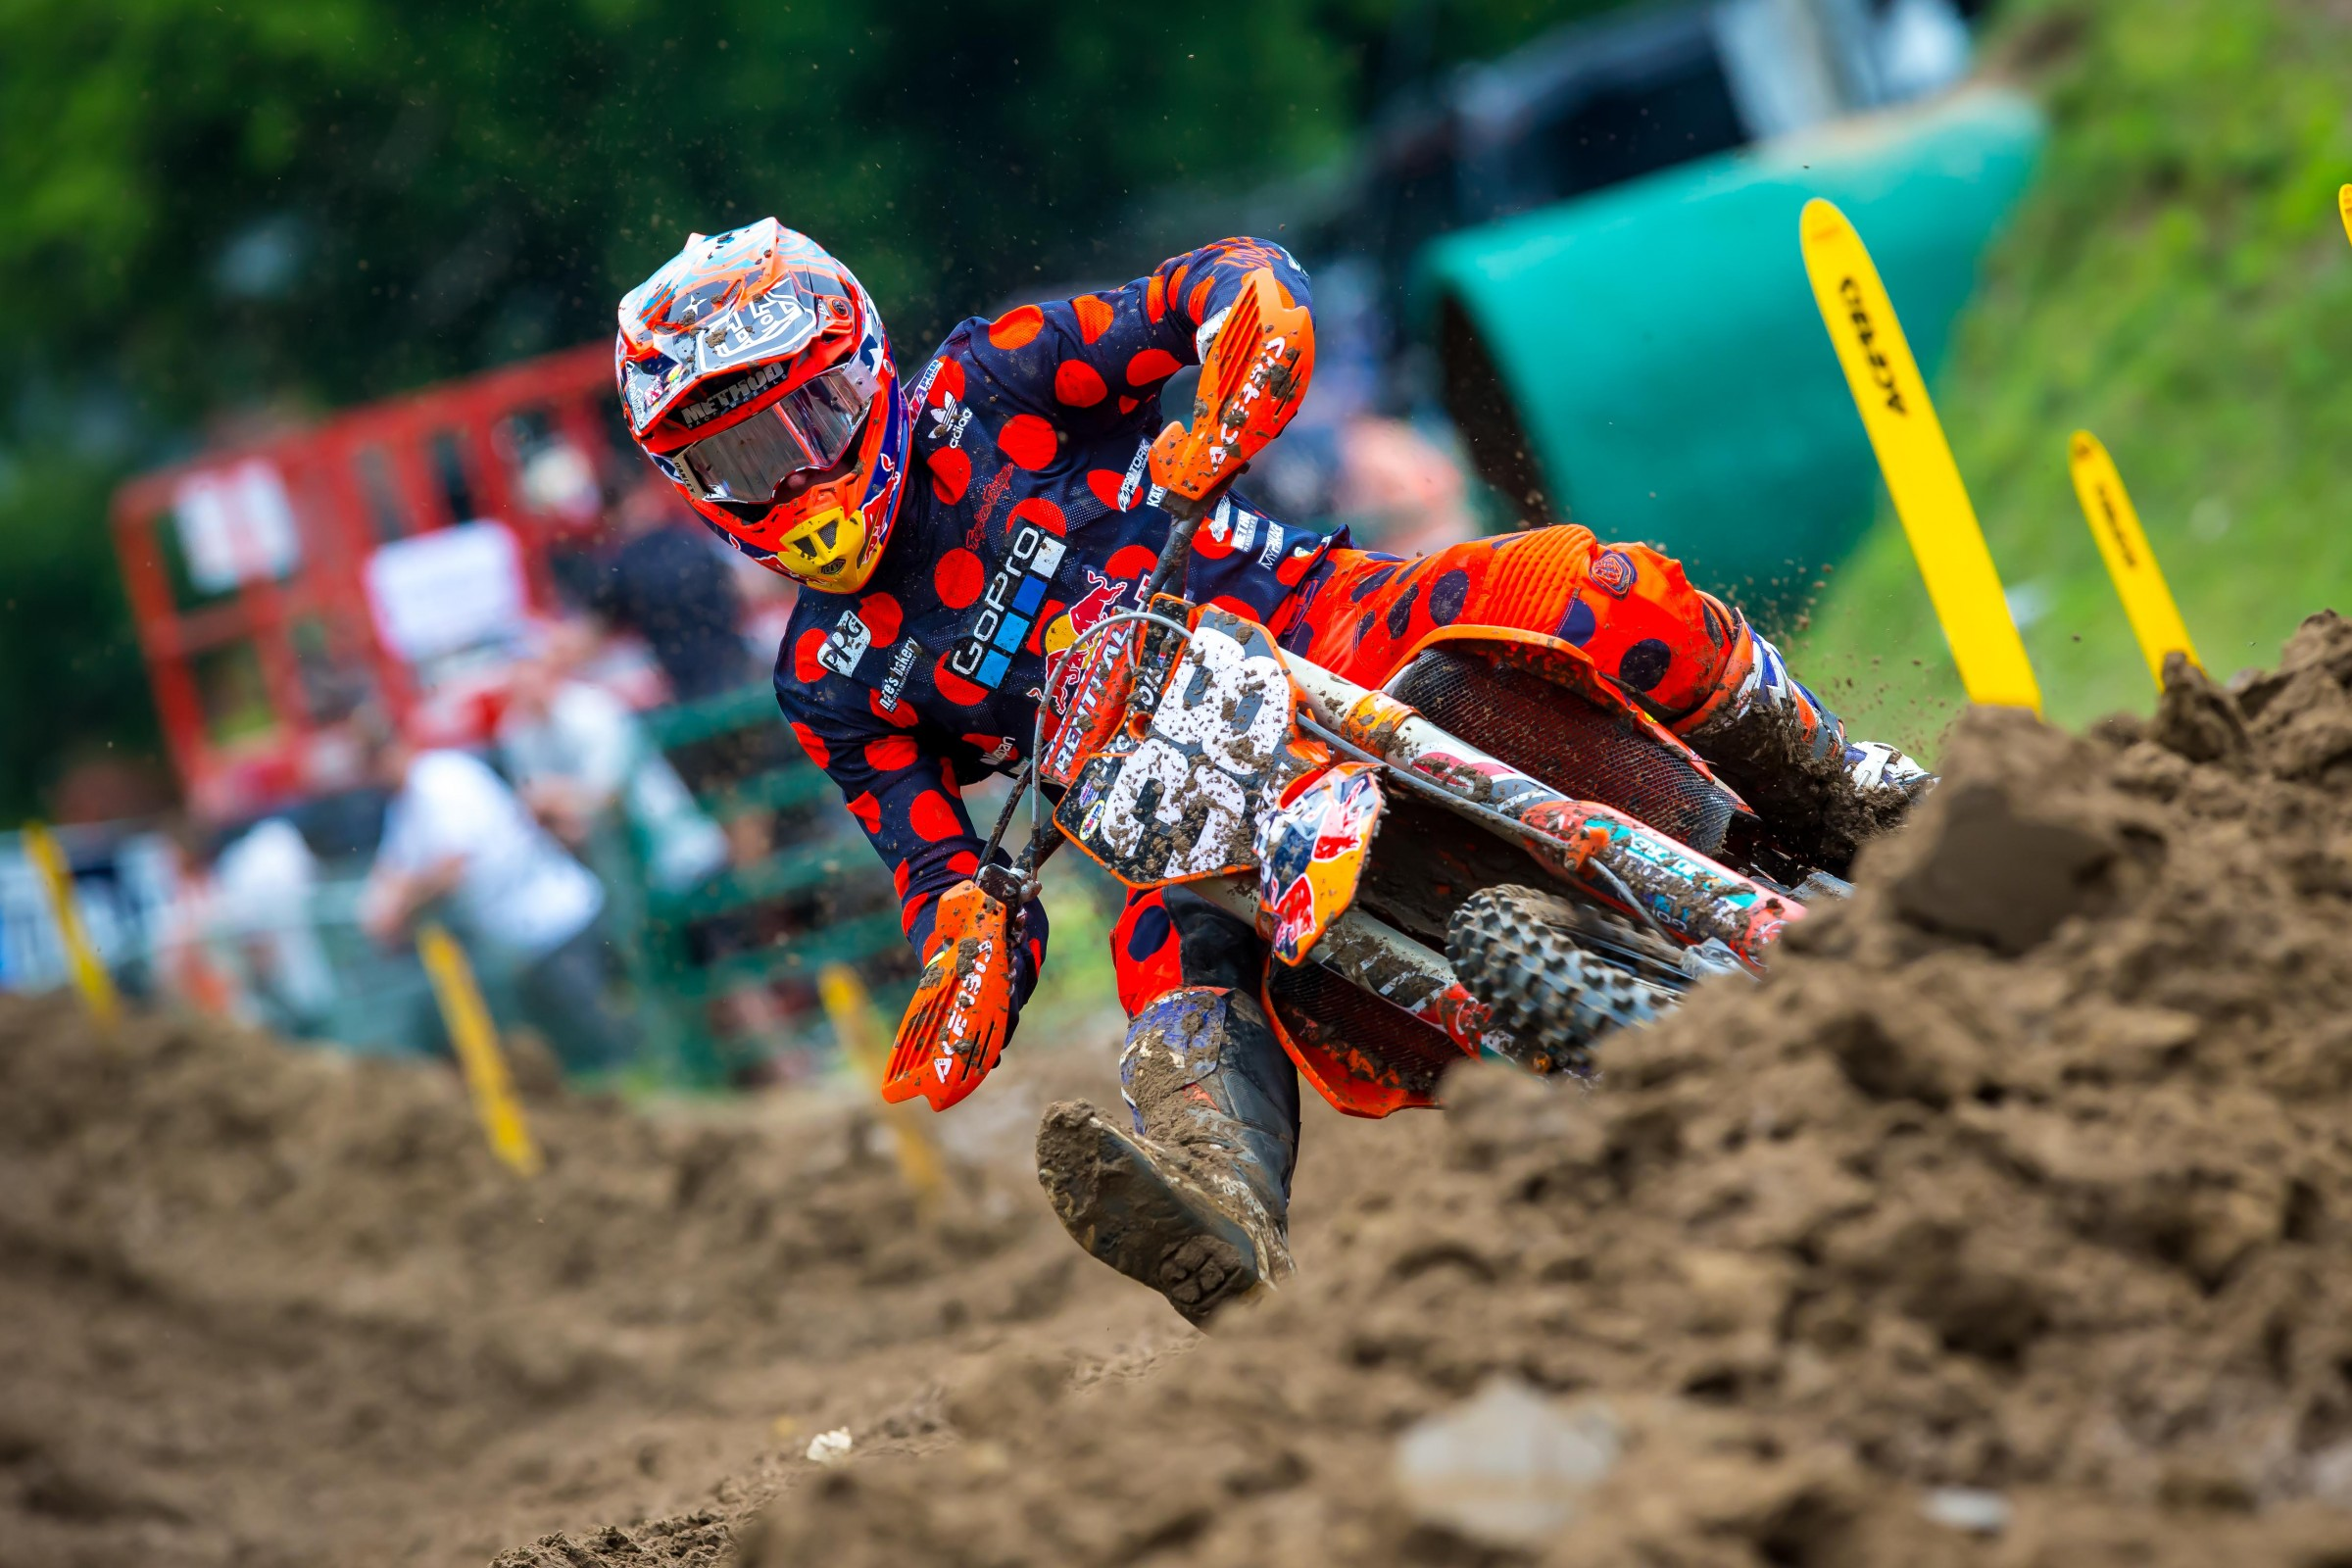 McElrath has scored points in every moto this year, but he still sits 11th in the points standings—170 behind Osborne.